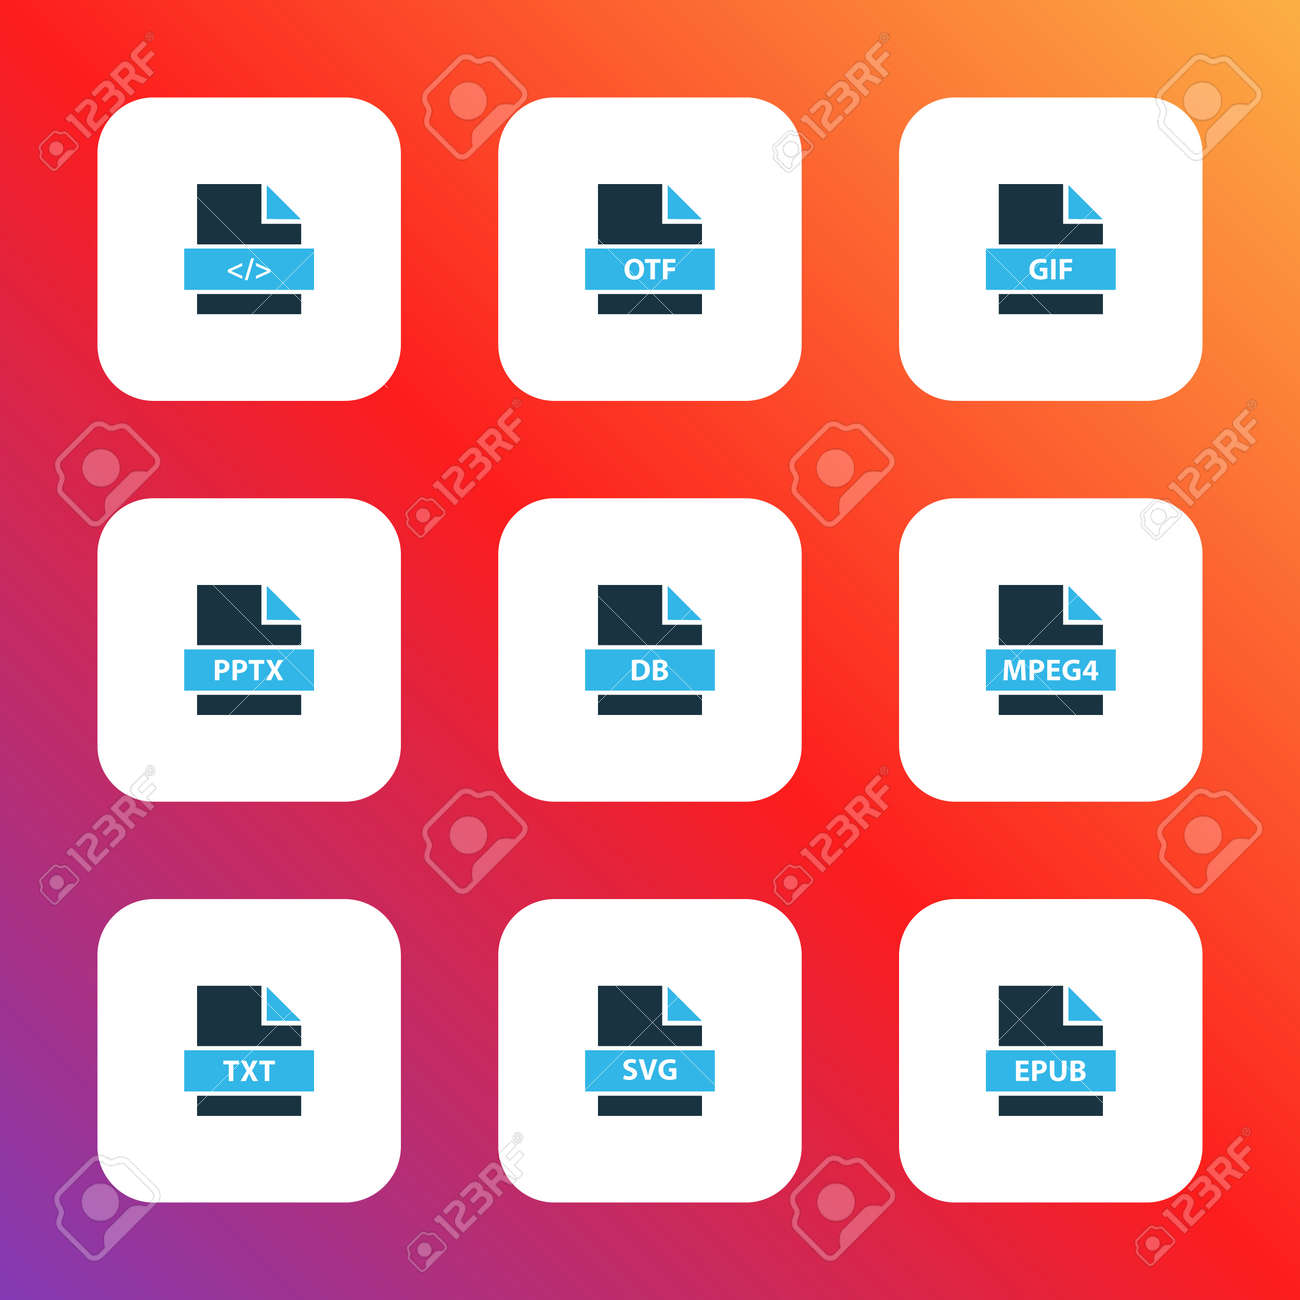 Epub Libres Types Icons Colored Set With File Epub Mpeg4 File File Gif And Other Document Elements Isolated Illustration Types Icons